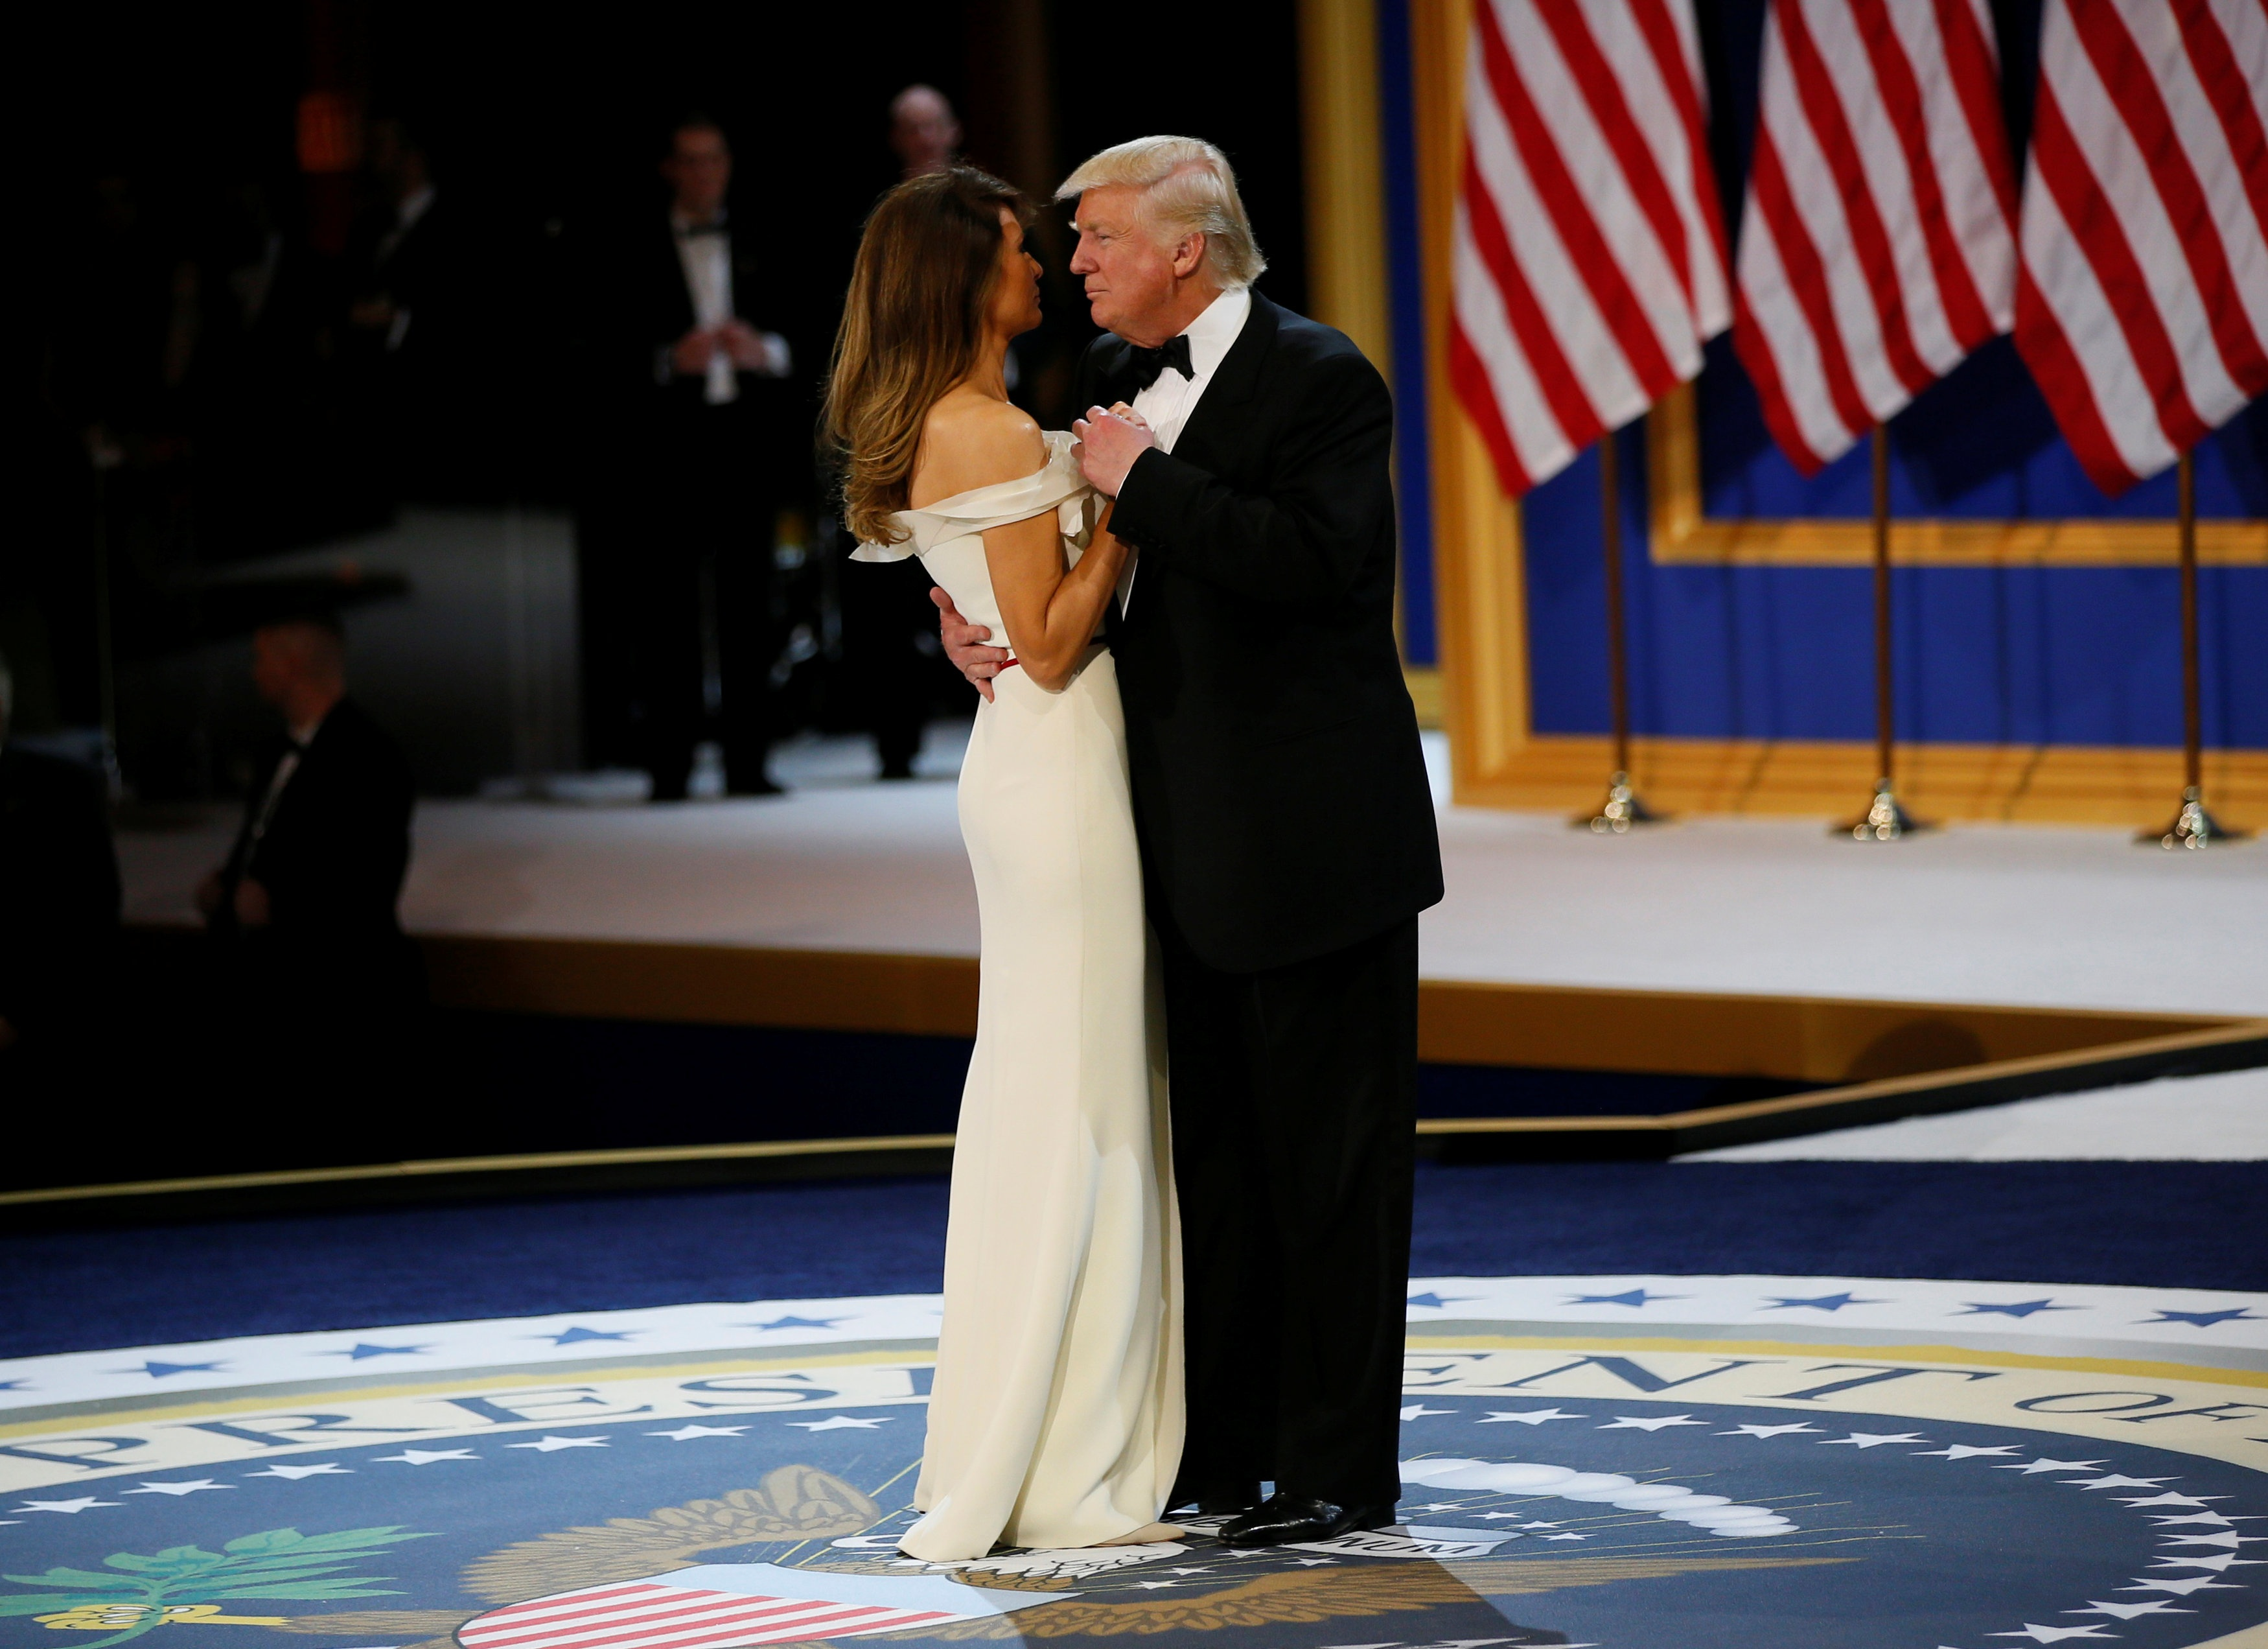 US President Donald Trump and his wife first lady Melania Trump dance at the